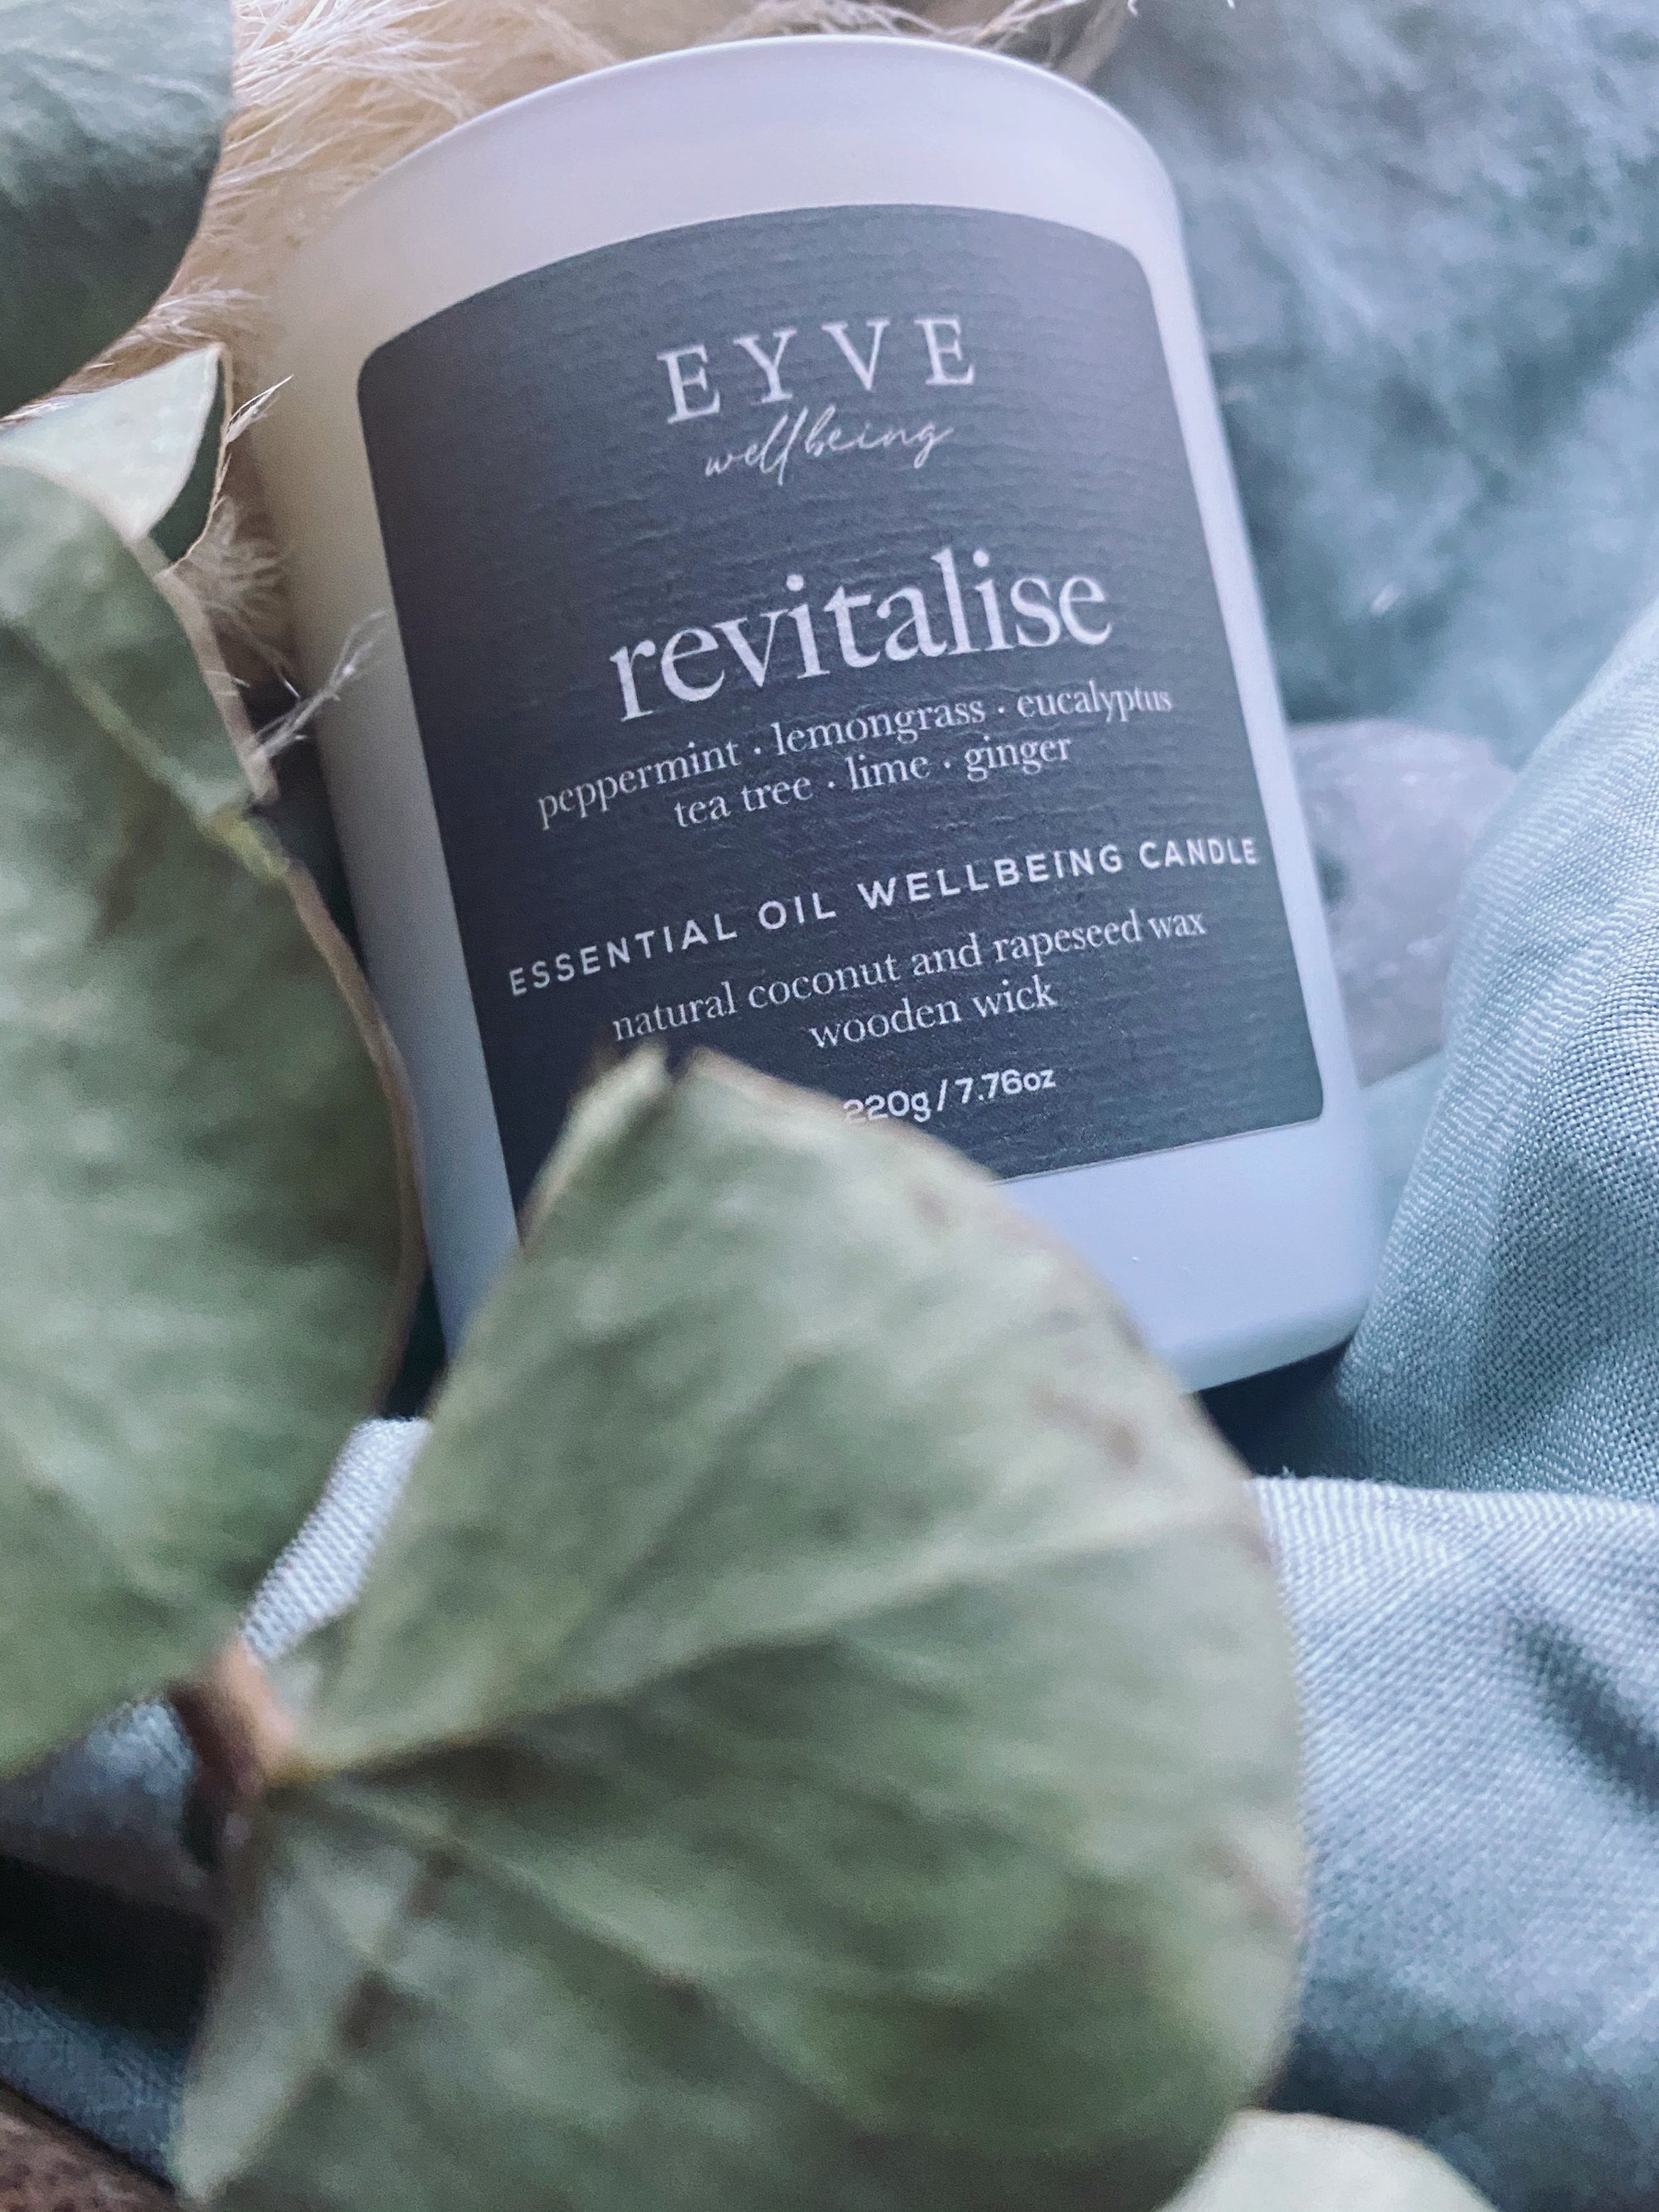 EYVE Wellbeing - Revitalise Essential Oil Wellbeing Candle